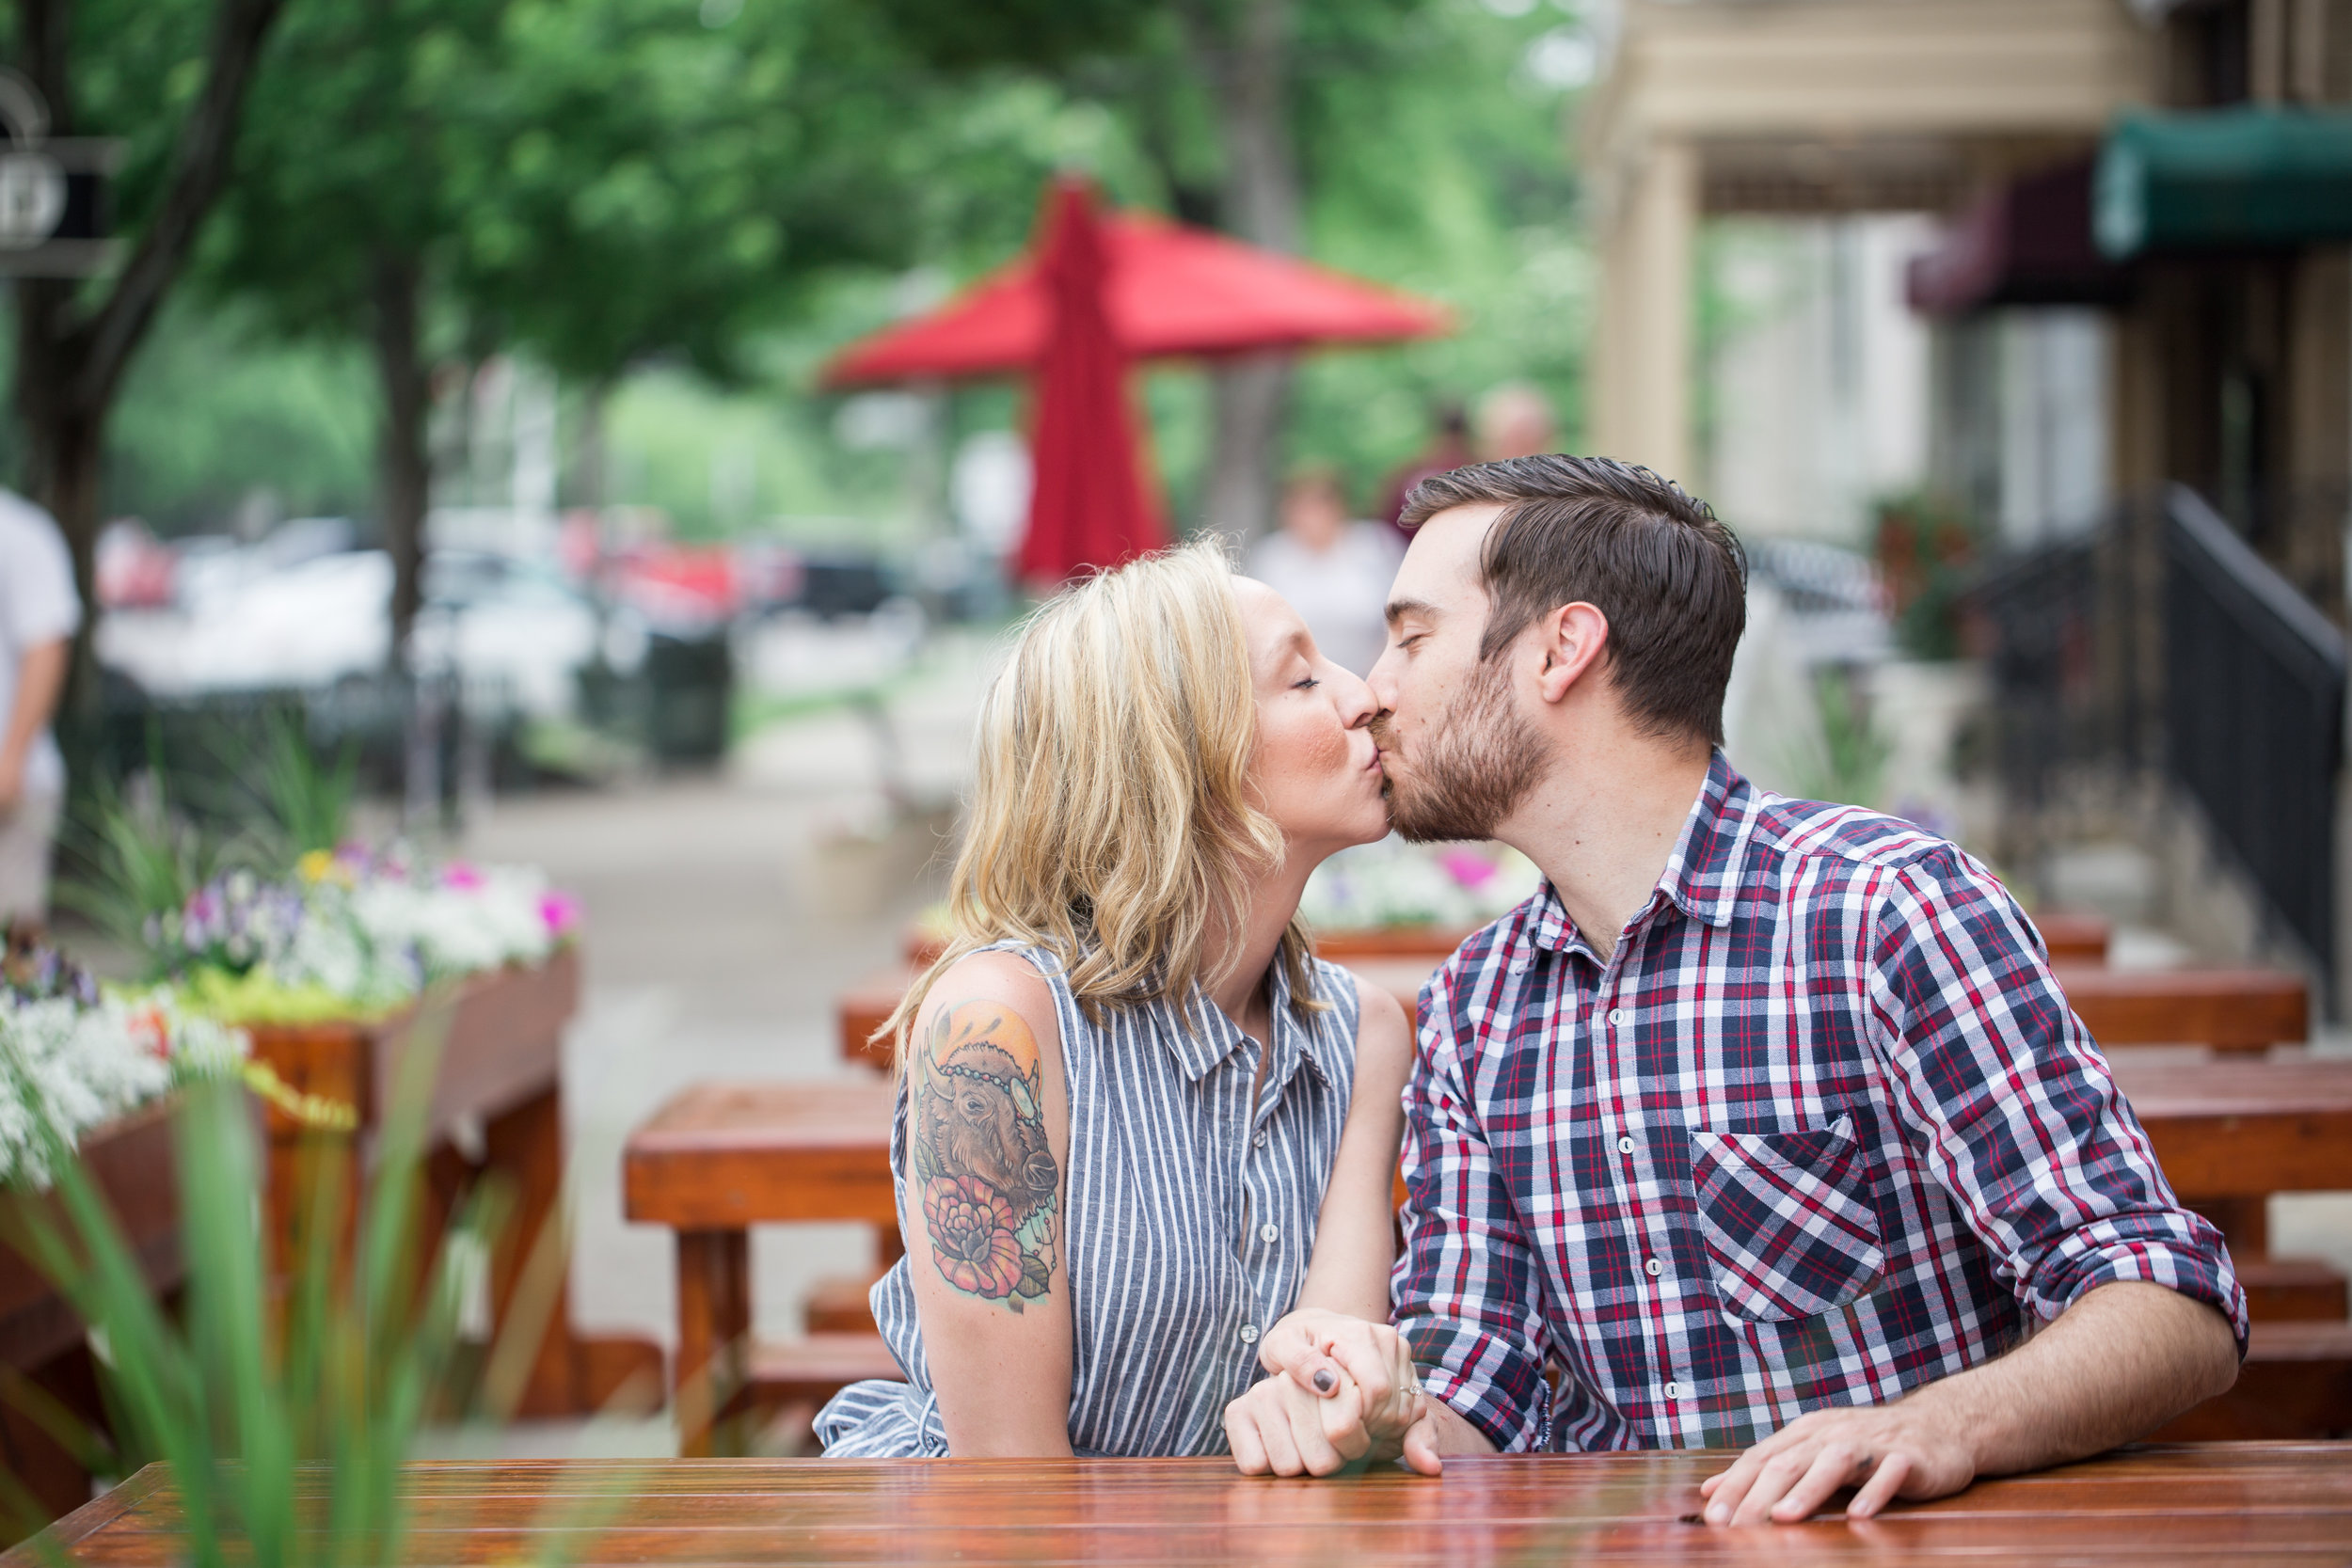 downtown_granville_engagement_inphinite_photography_columbus_ohio_wedding_photographer